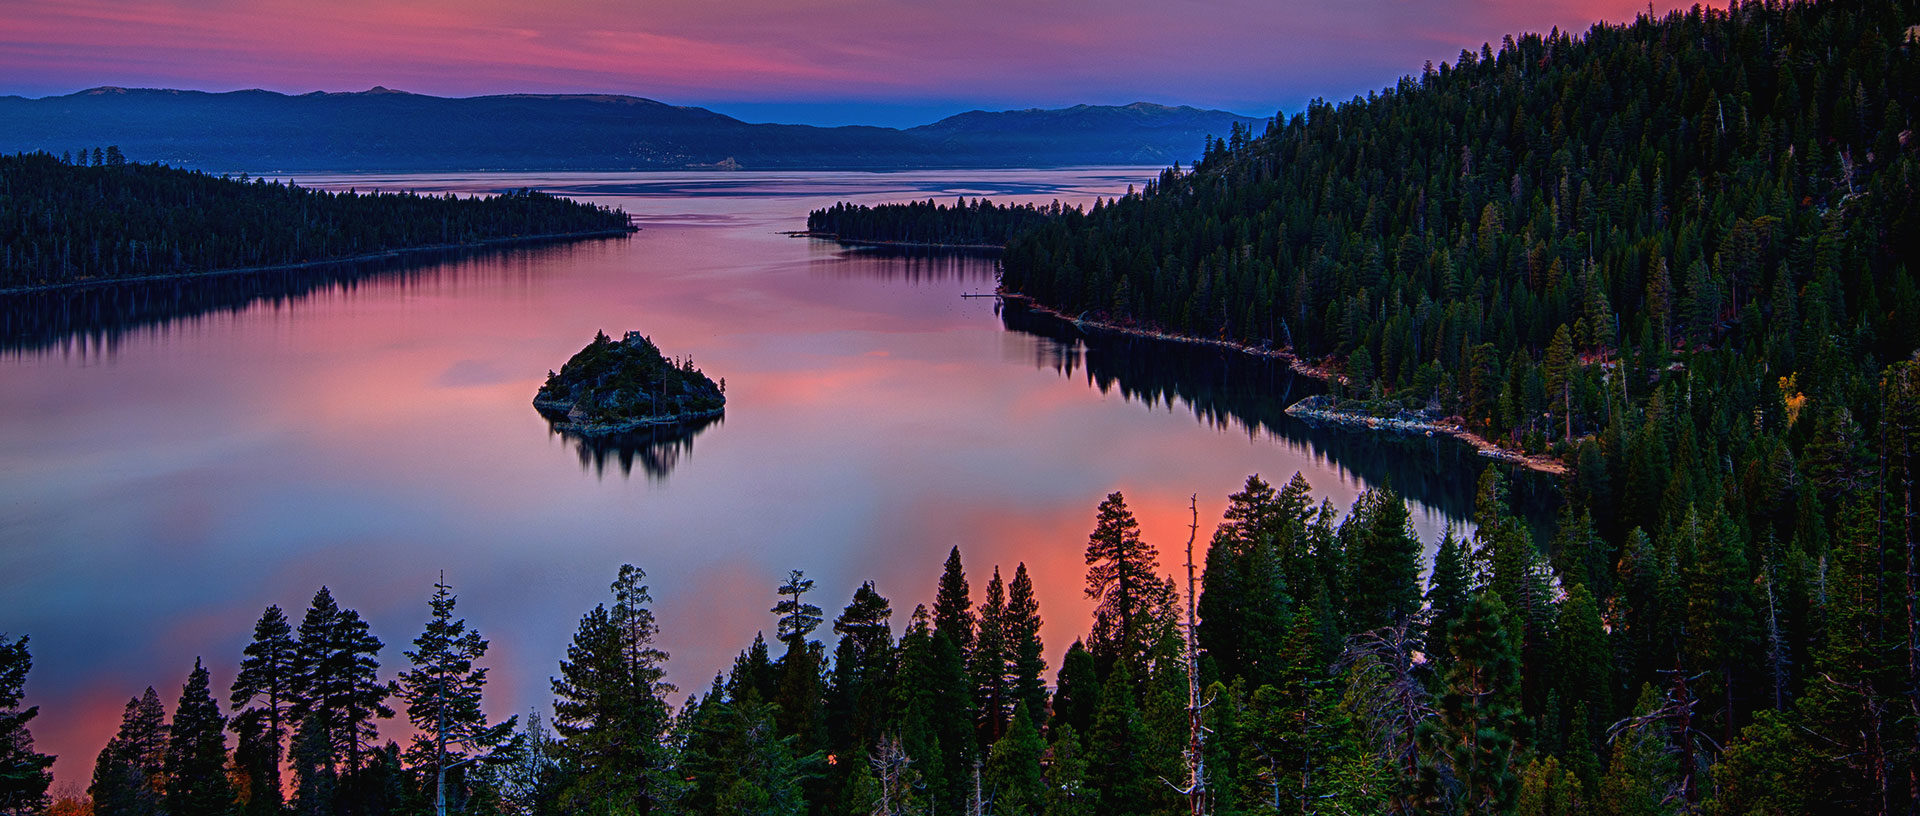 A colorful sunset reflected in the water of Emerald Bay on the Lake Tahoe shore